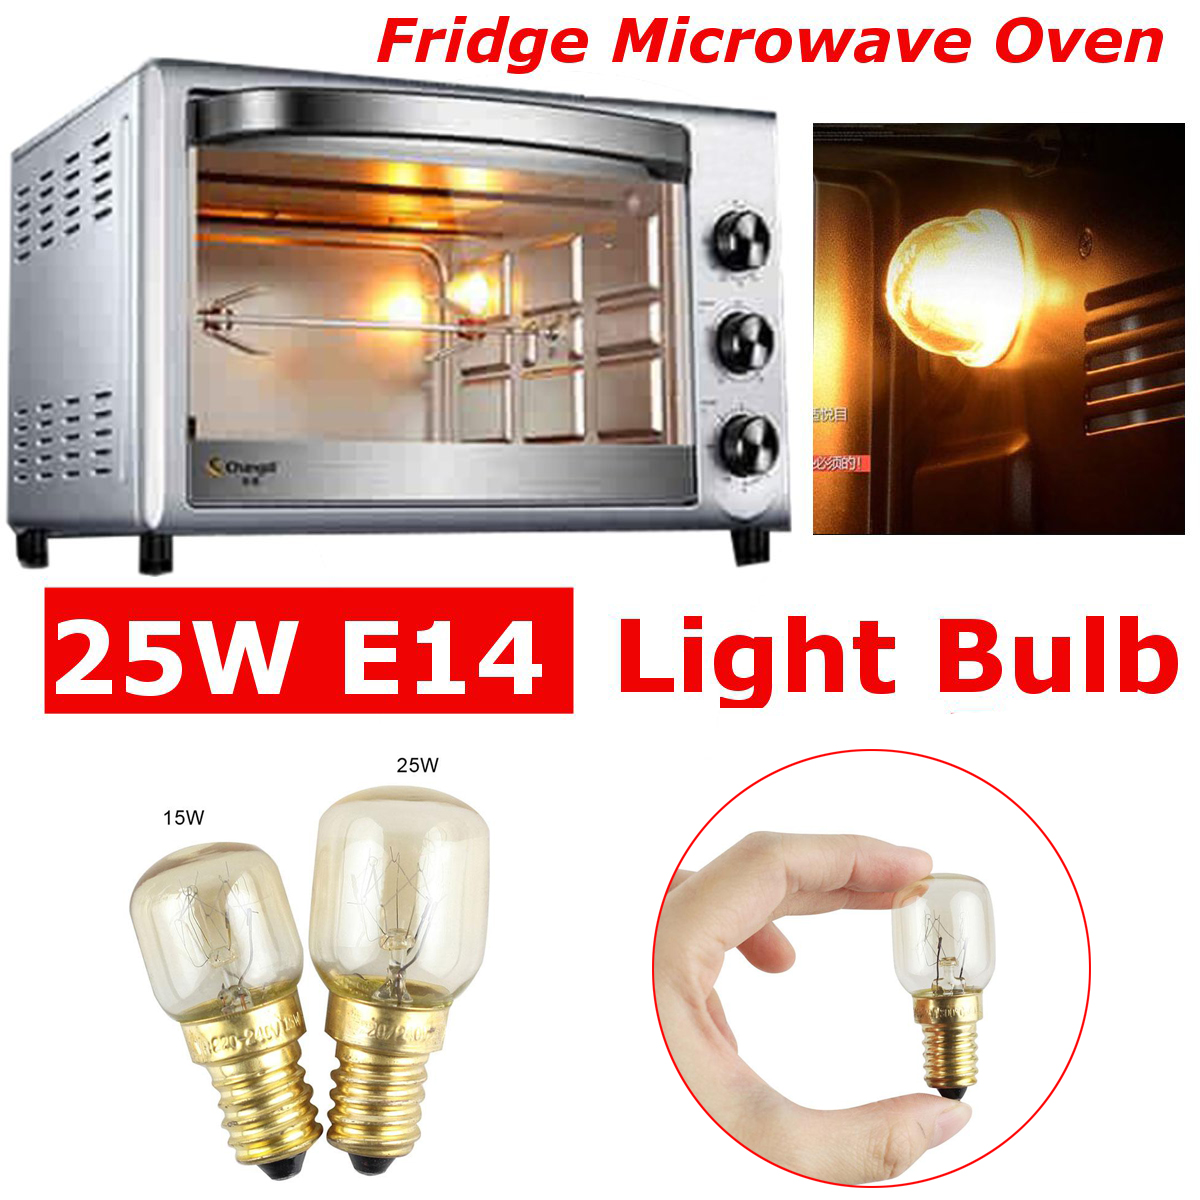 Studyset  220v E14 300 Degree High Temperature Resistant Microwave Oven Bulbs Cooker Lamp Salt Light Bulb